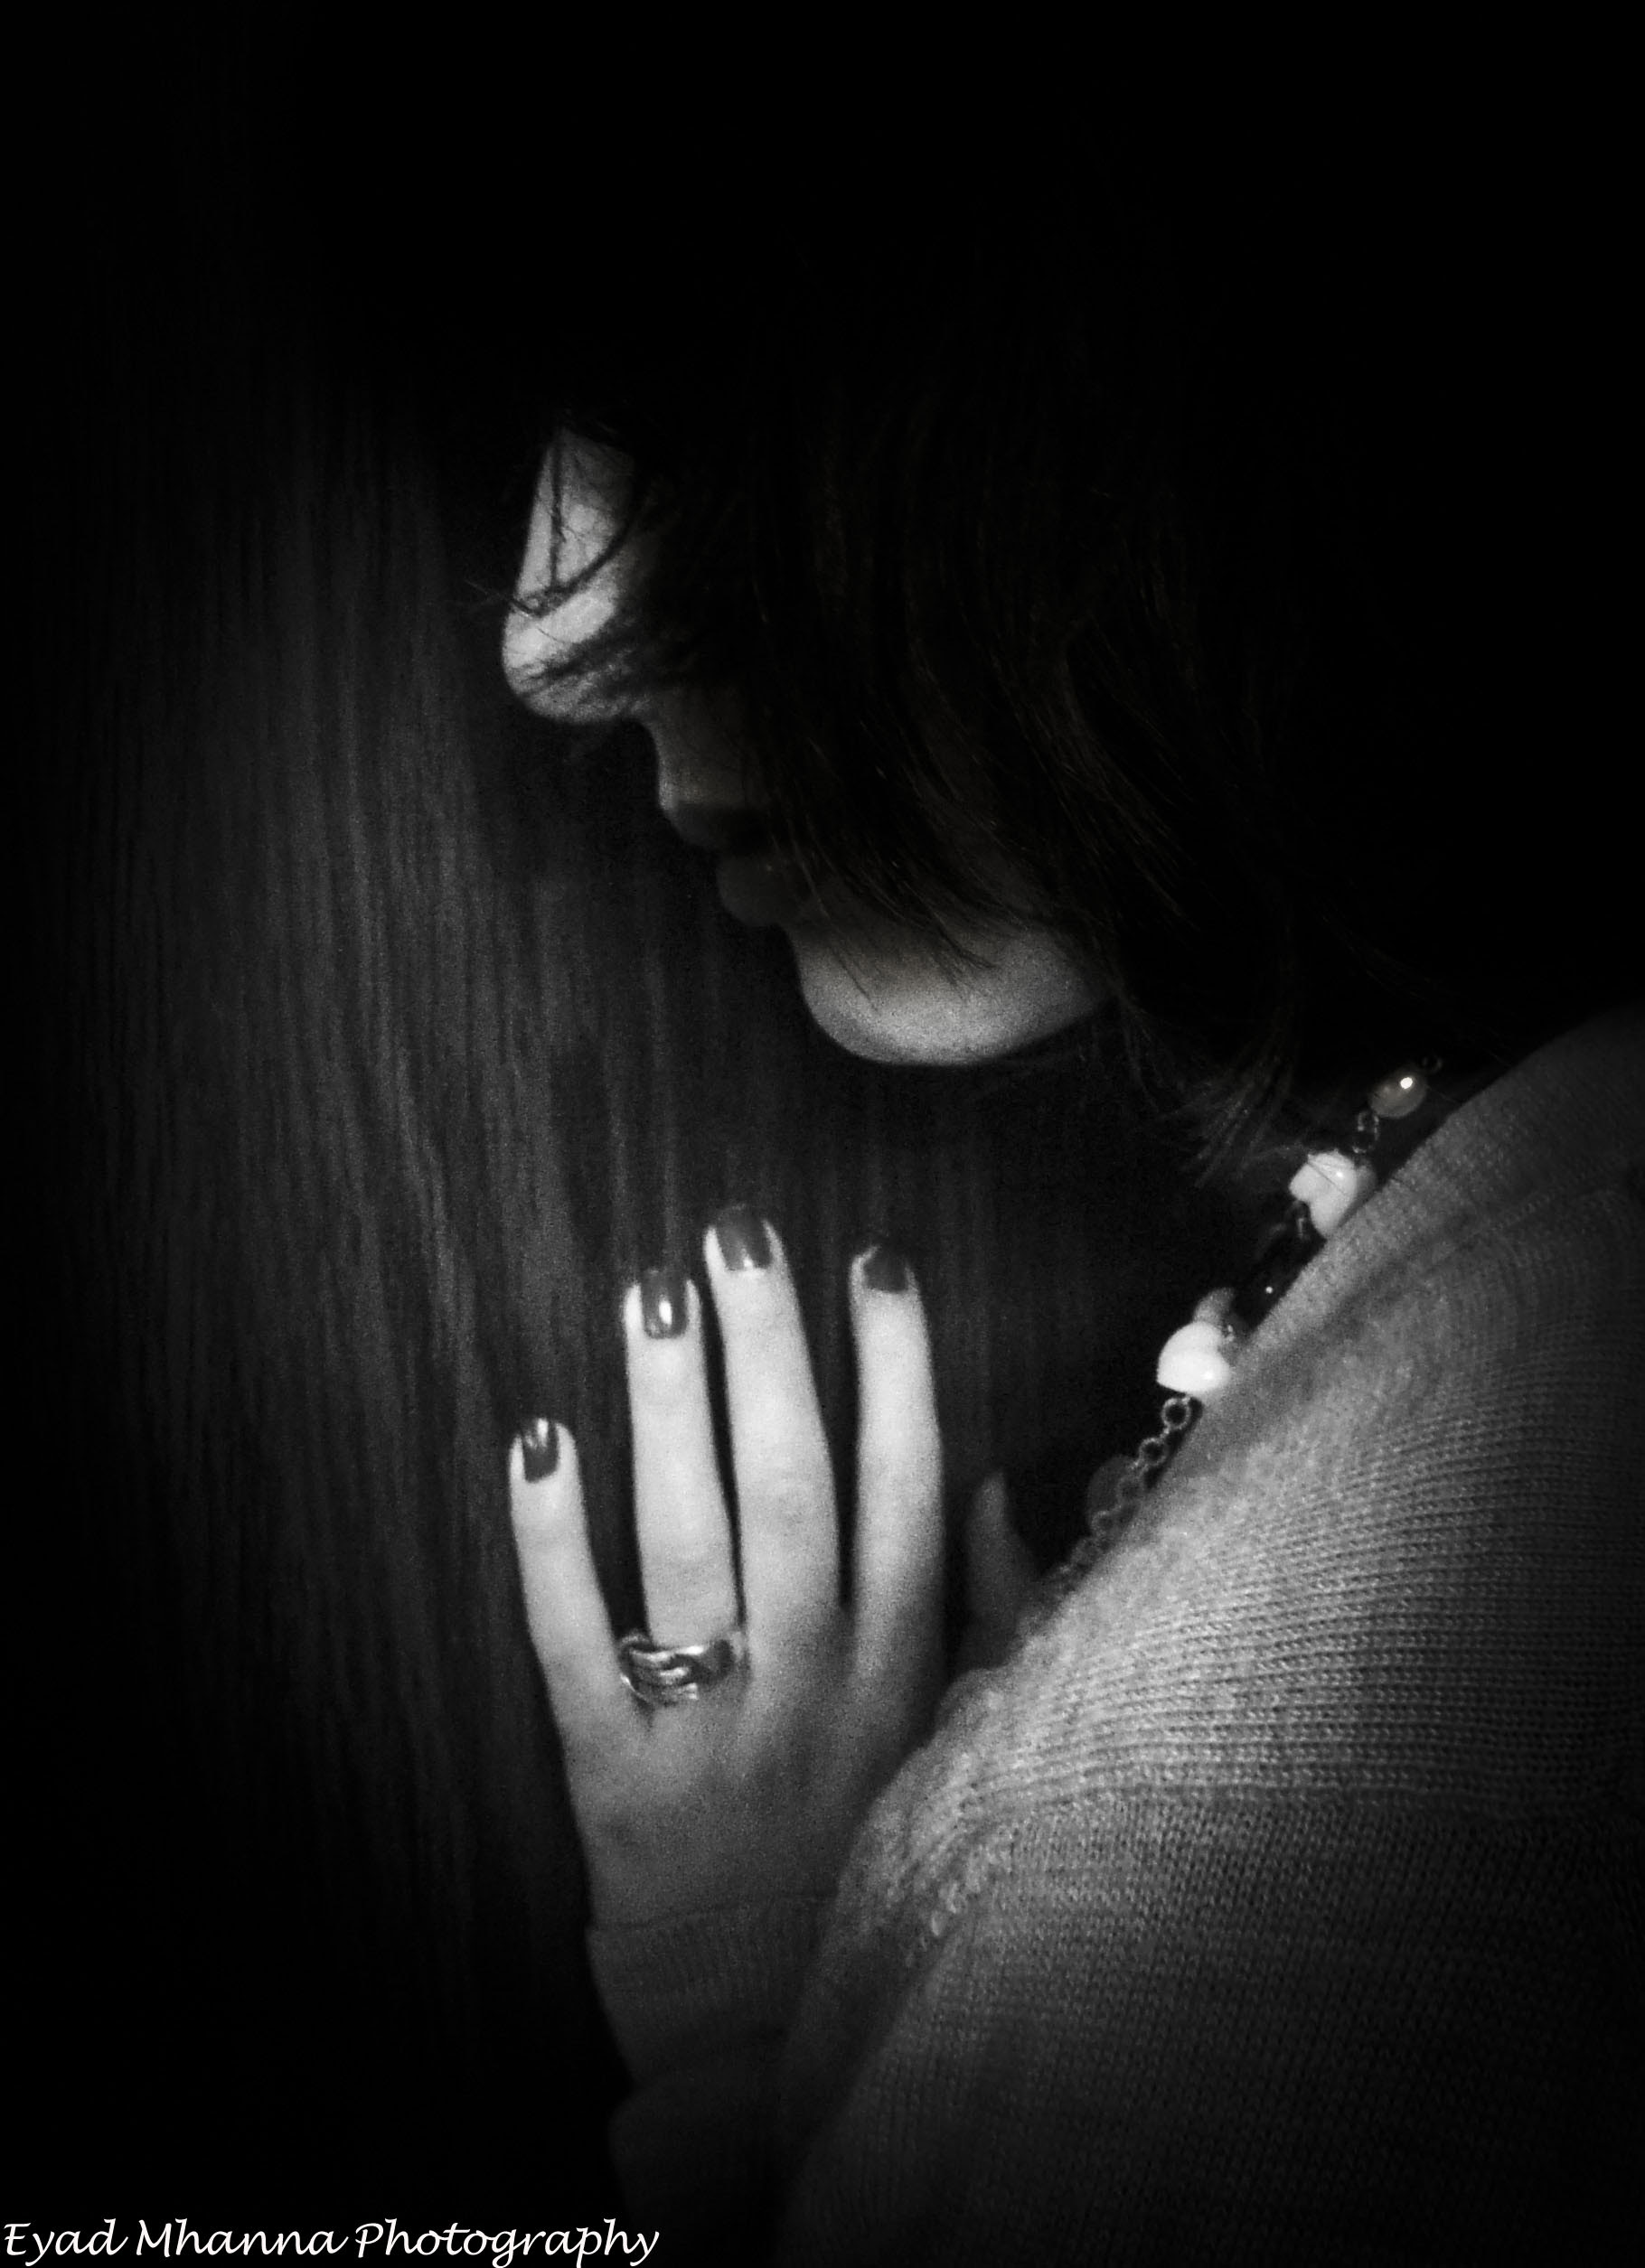 A Lonely Sad Girl Cute Girl Heart Broken And Upset After Love